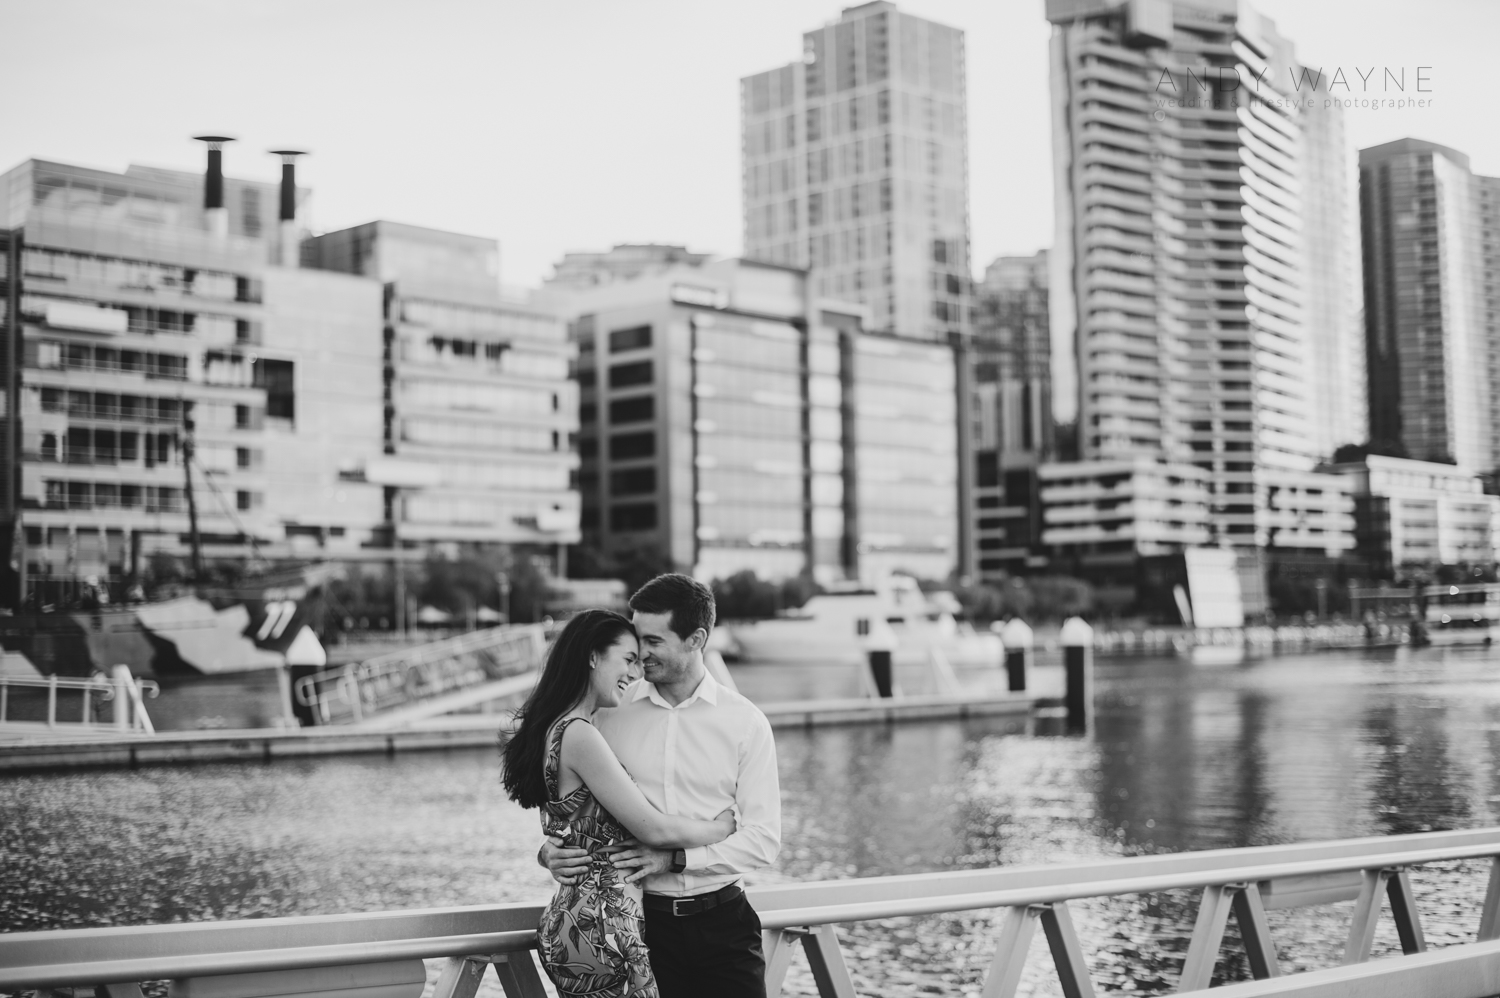 melbourne australia docklands andy wayne photographer engagement shoot-100.jpg